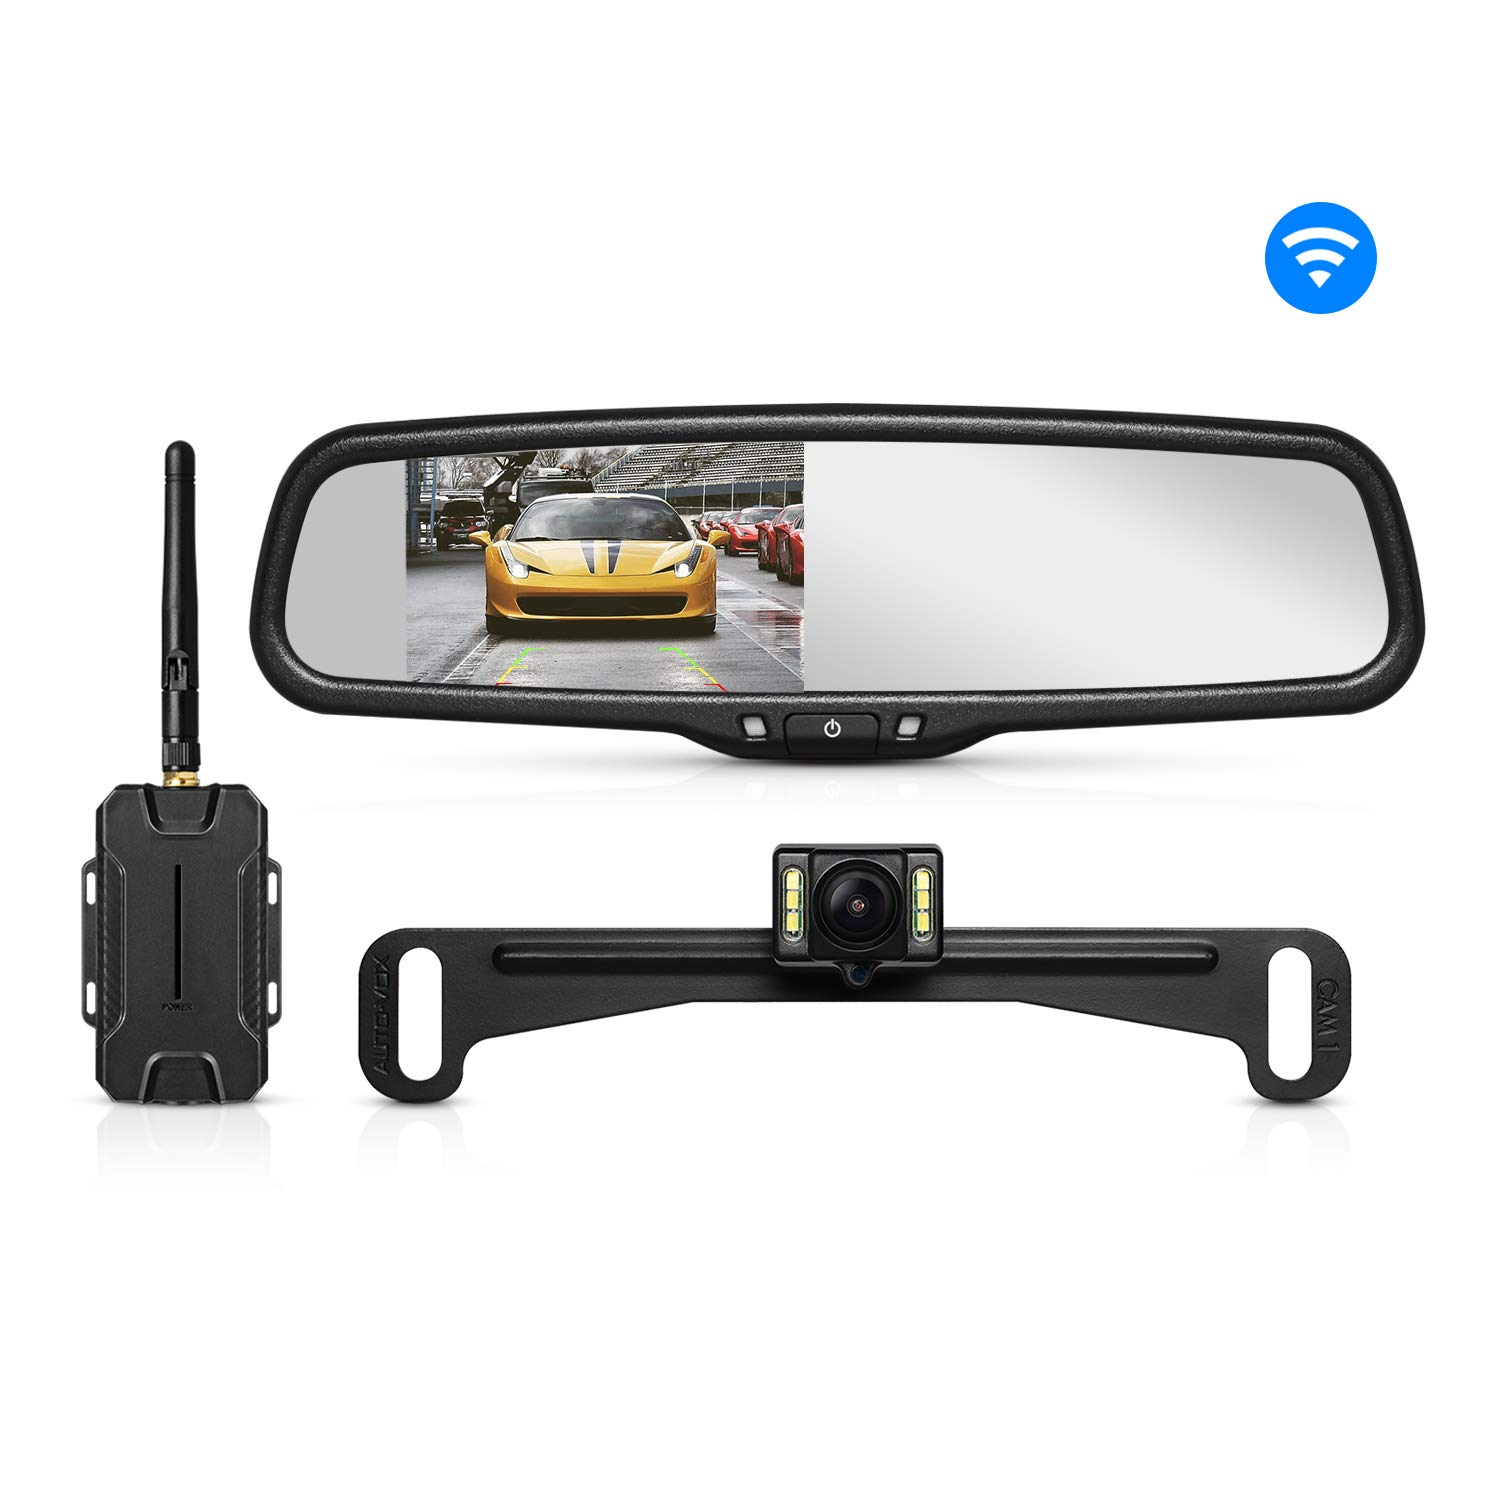 AUTO VOX T1400 Upgrade Wireless Backup Camera Kit, Easy Installation with No Wiring, No Interference, OEM Look with IP 68 Waterproof Super Night Vision Rear View Camera by AUTO-VOX (Image #1)